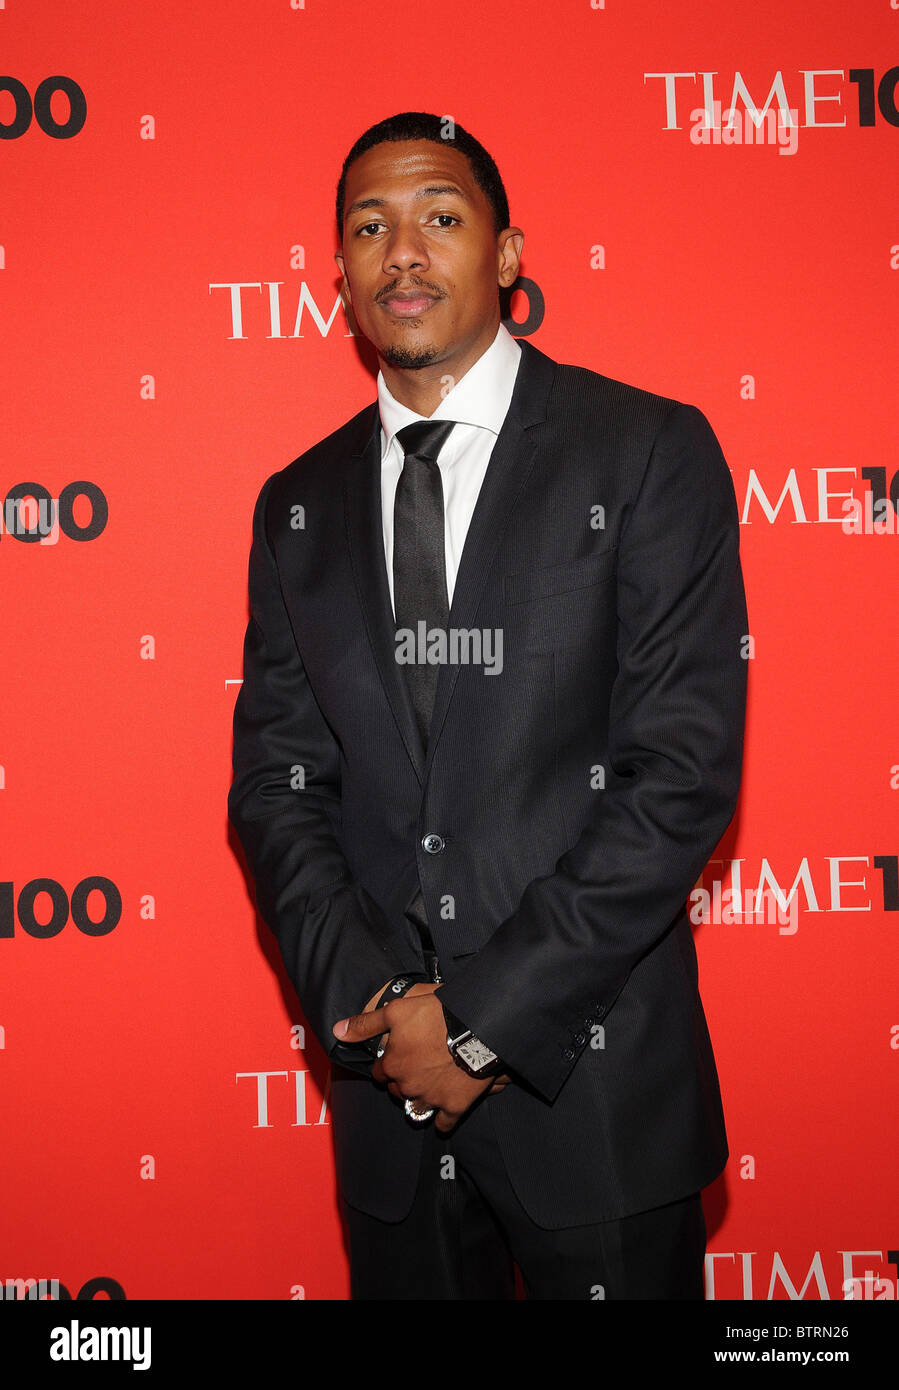 Nick Cannon arrivals TIME 100 Most Influential People inWorld Annual Gala Time Warner Center New York NY May 4 2010 - Stock Image